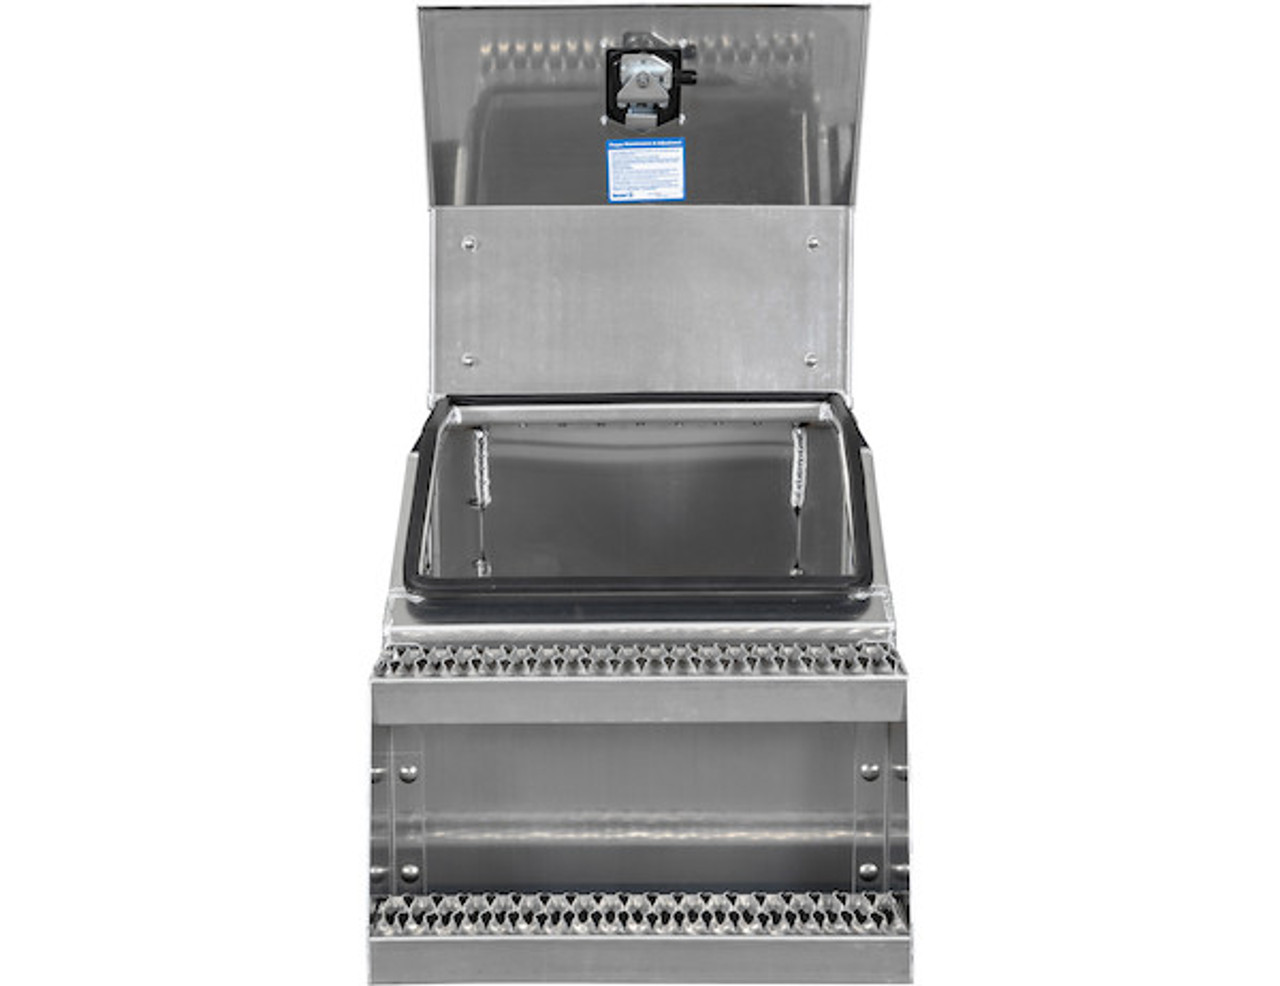 1705286 BUYERS PRODUCTS WideOpen™ Class 8 Step Tool Box For Semi Trucks - 22 Inch Width 8